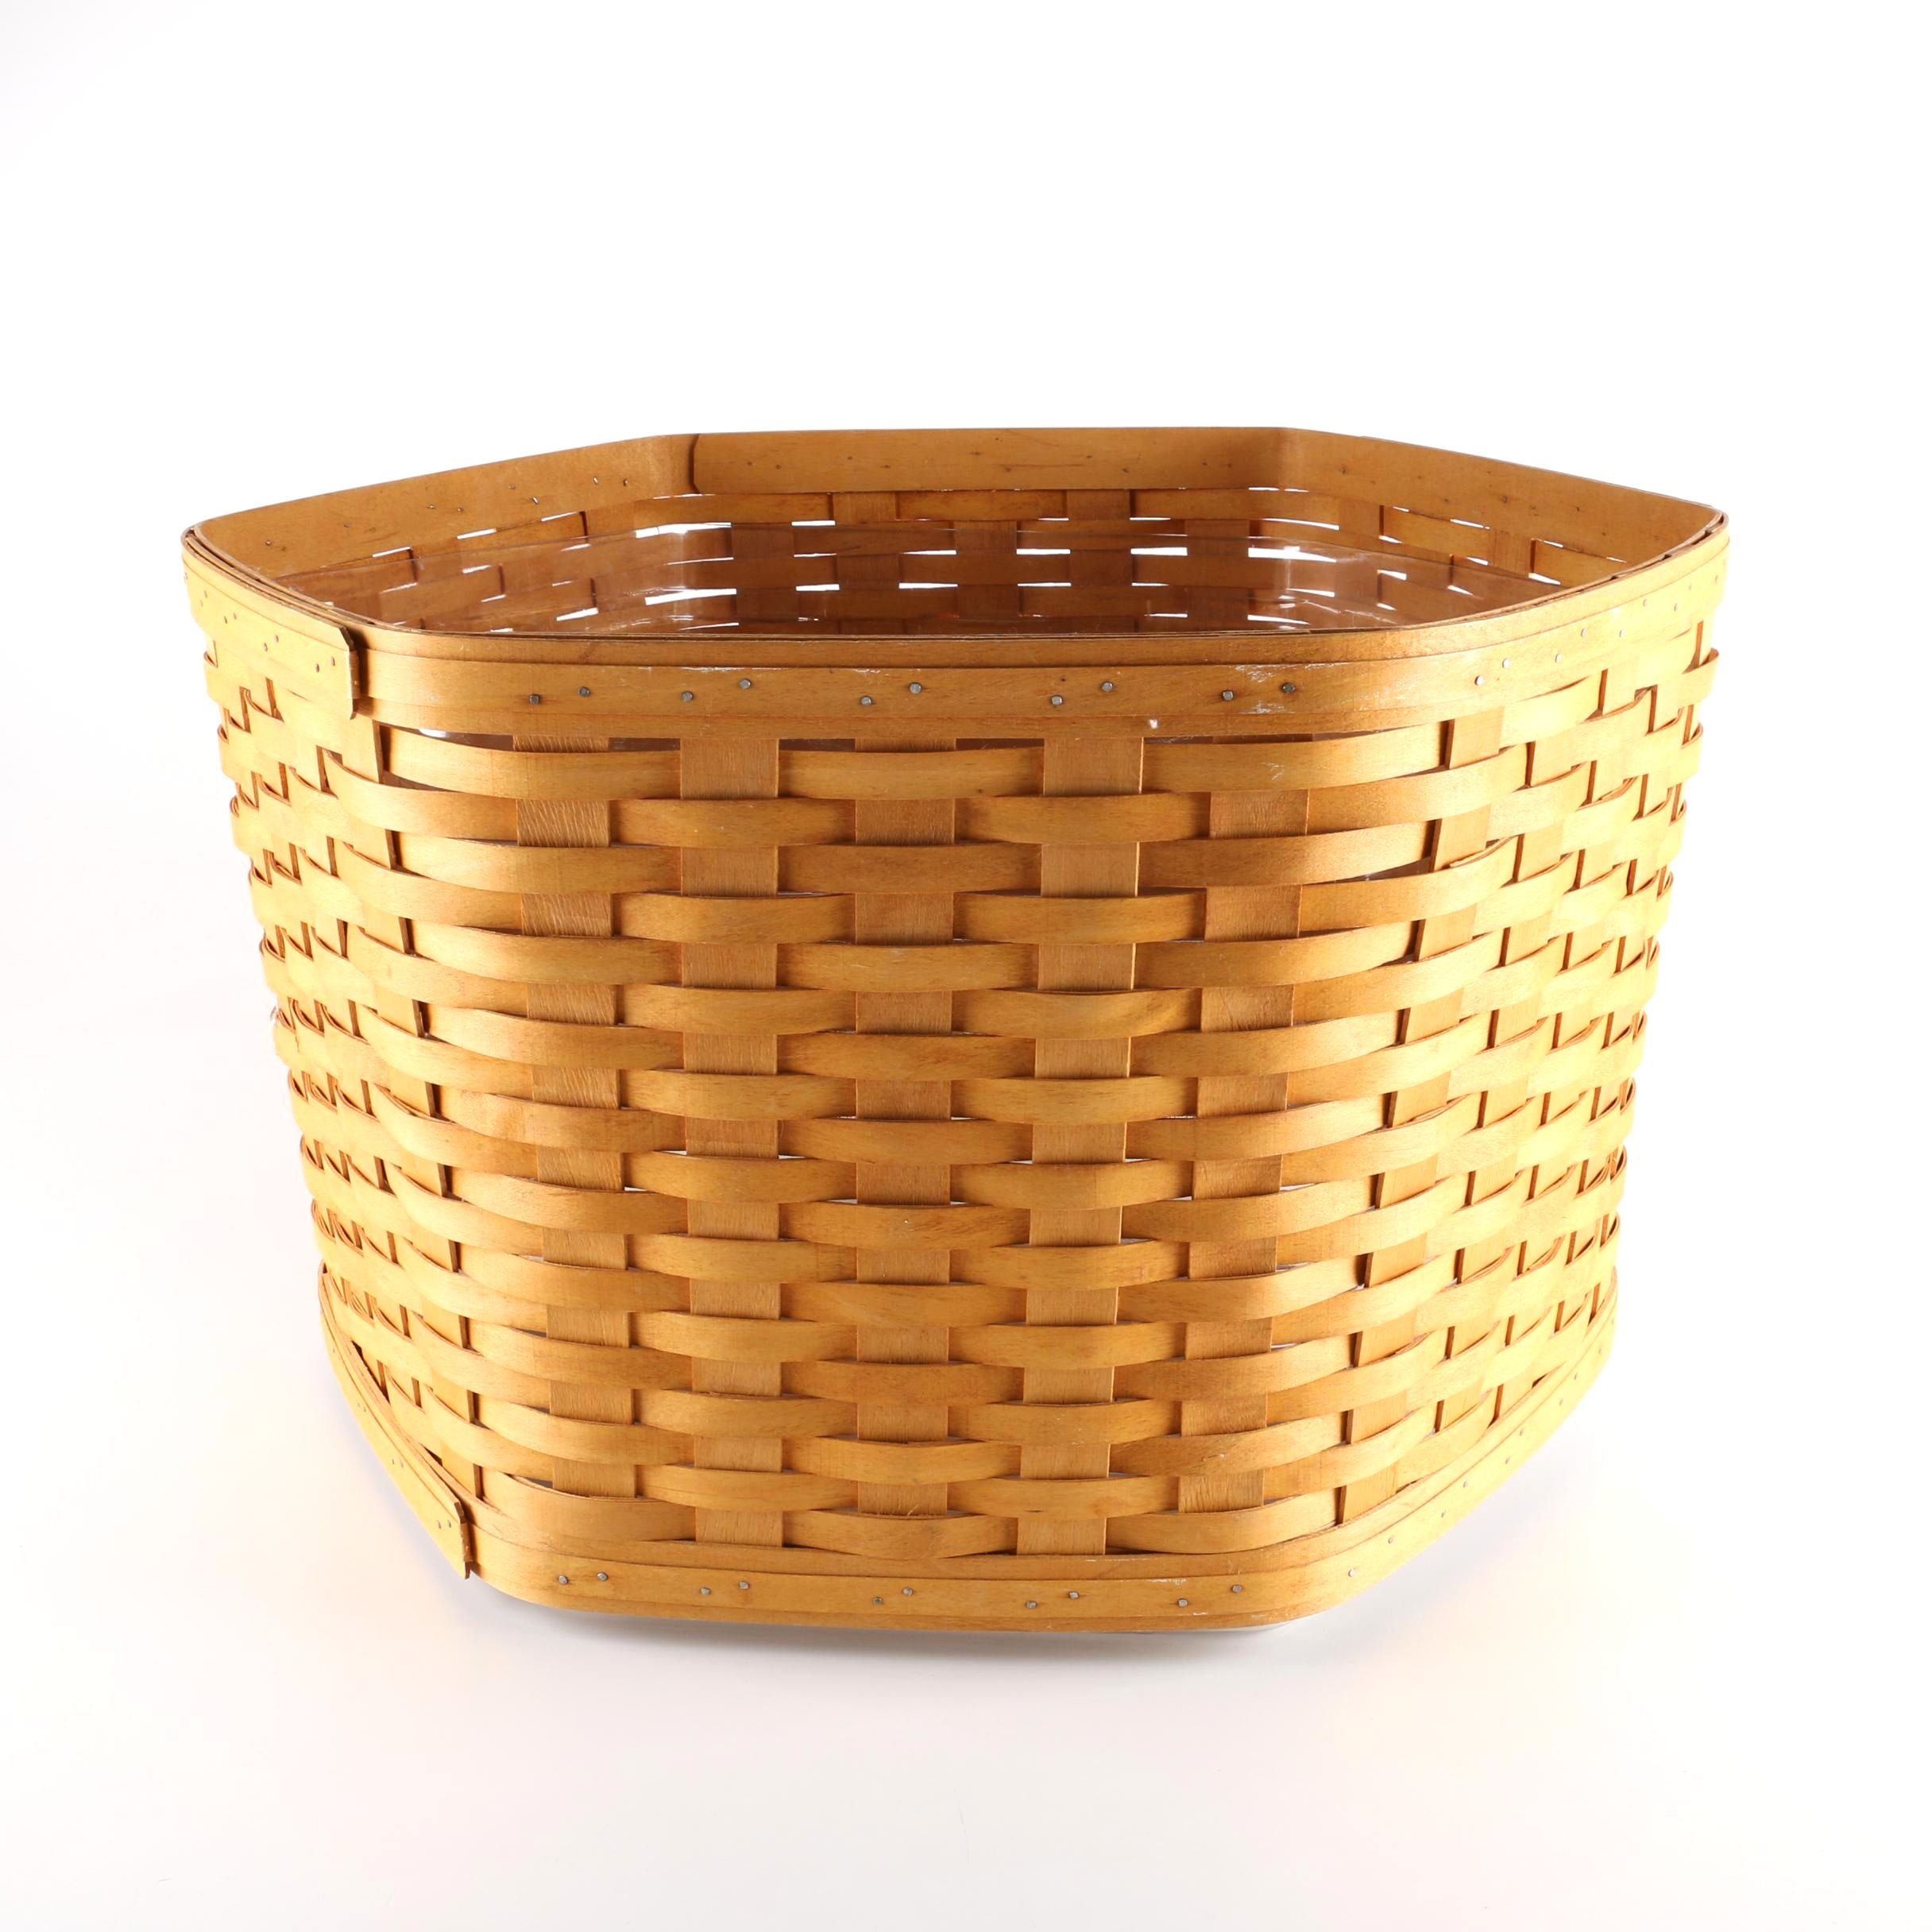 Longaberger baskets for sale longaberger baskets thyme Longaberger baskets for sale